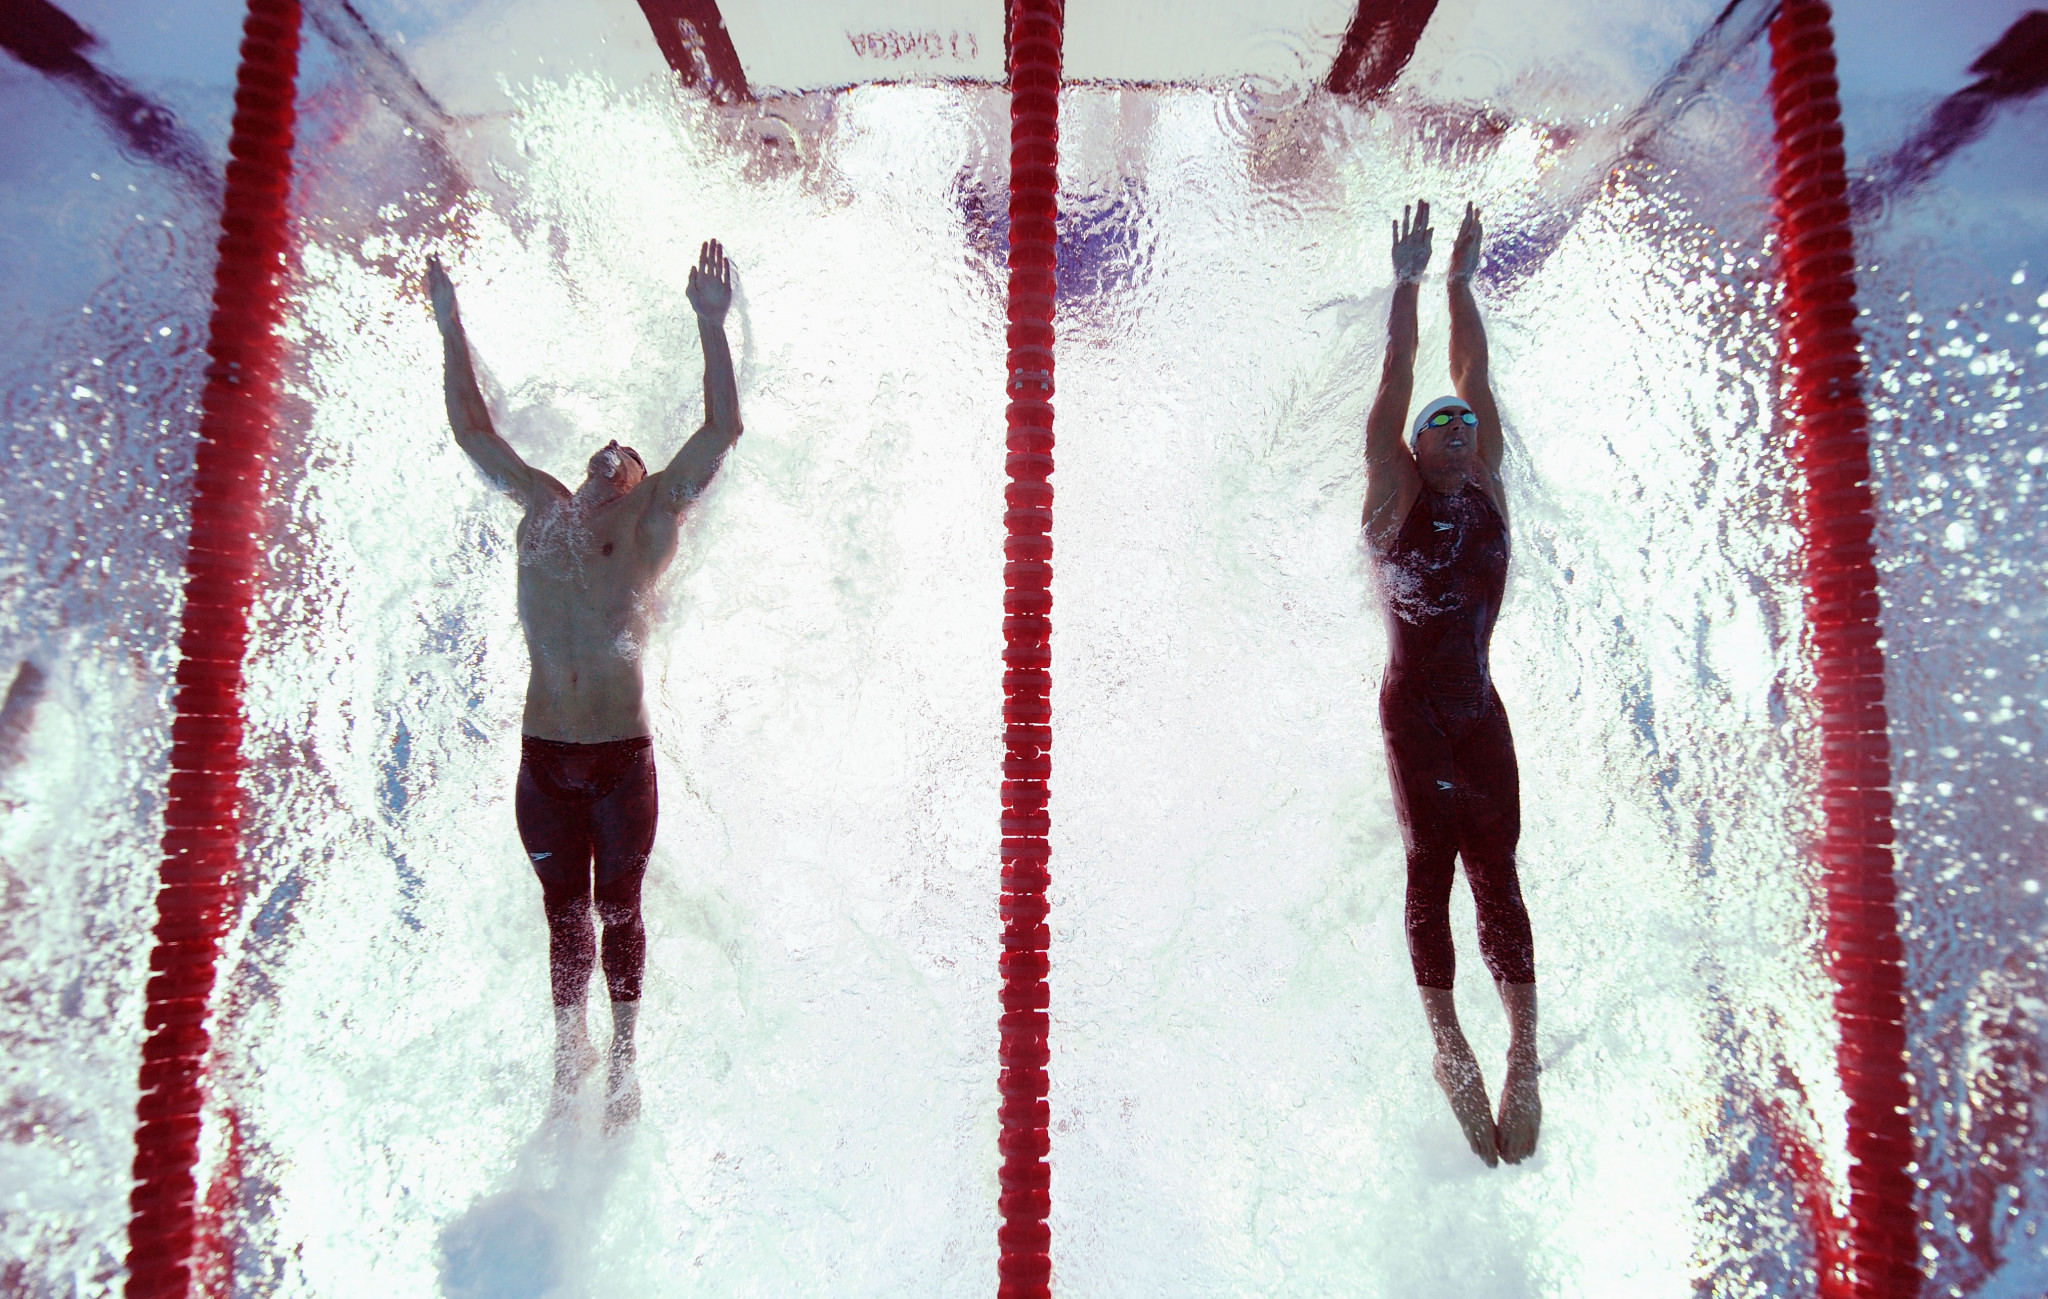 Michael Phelps, left, was adjudged to have beaten Milorad Čavić, right, in a controversial finish at Beijing 2008 ©Getty Images